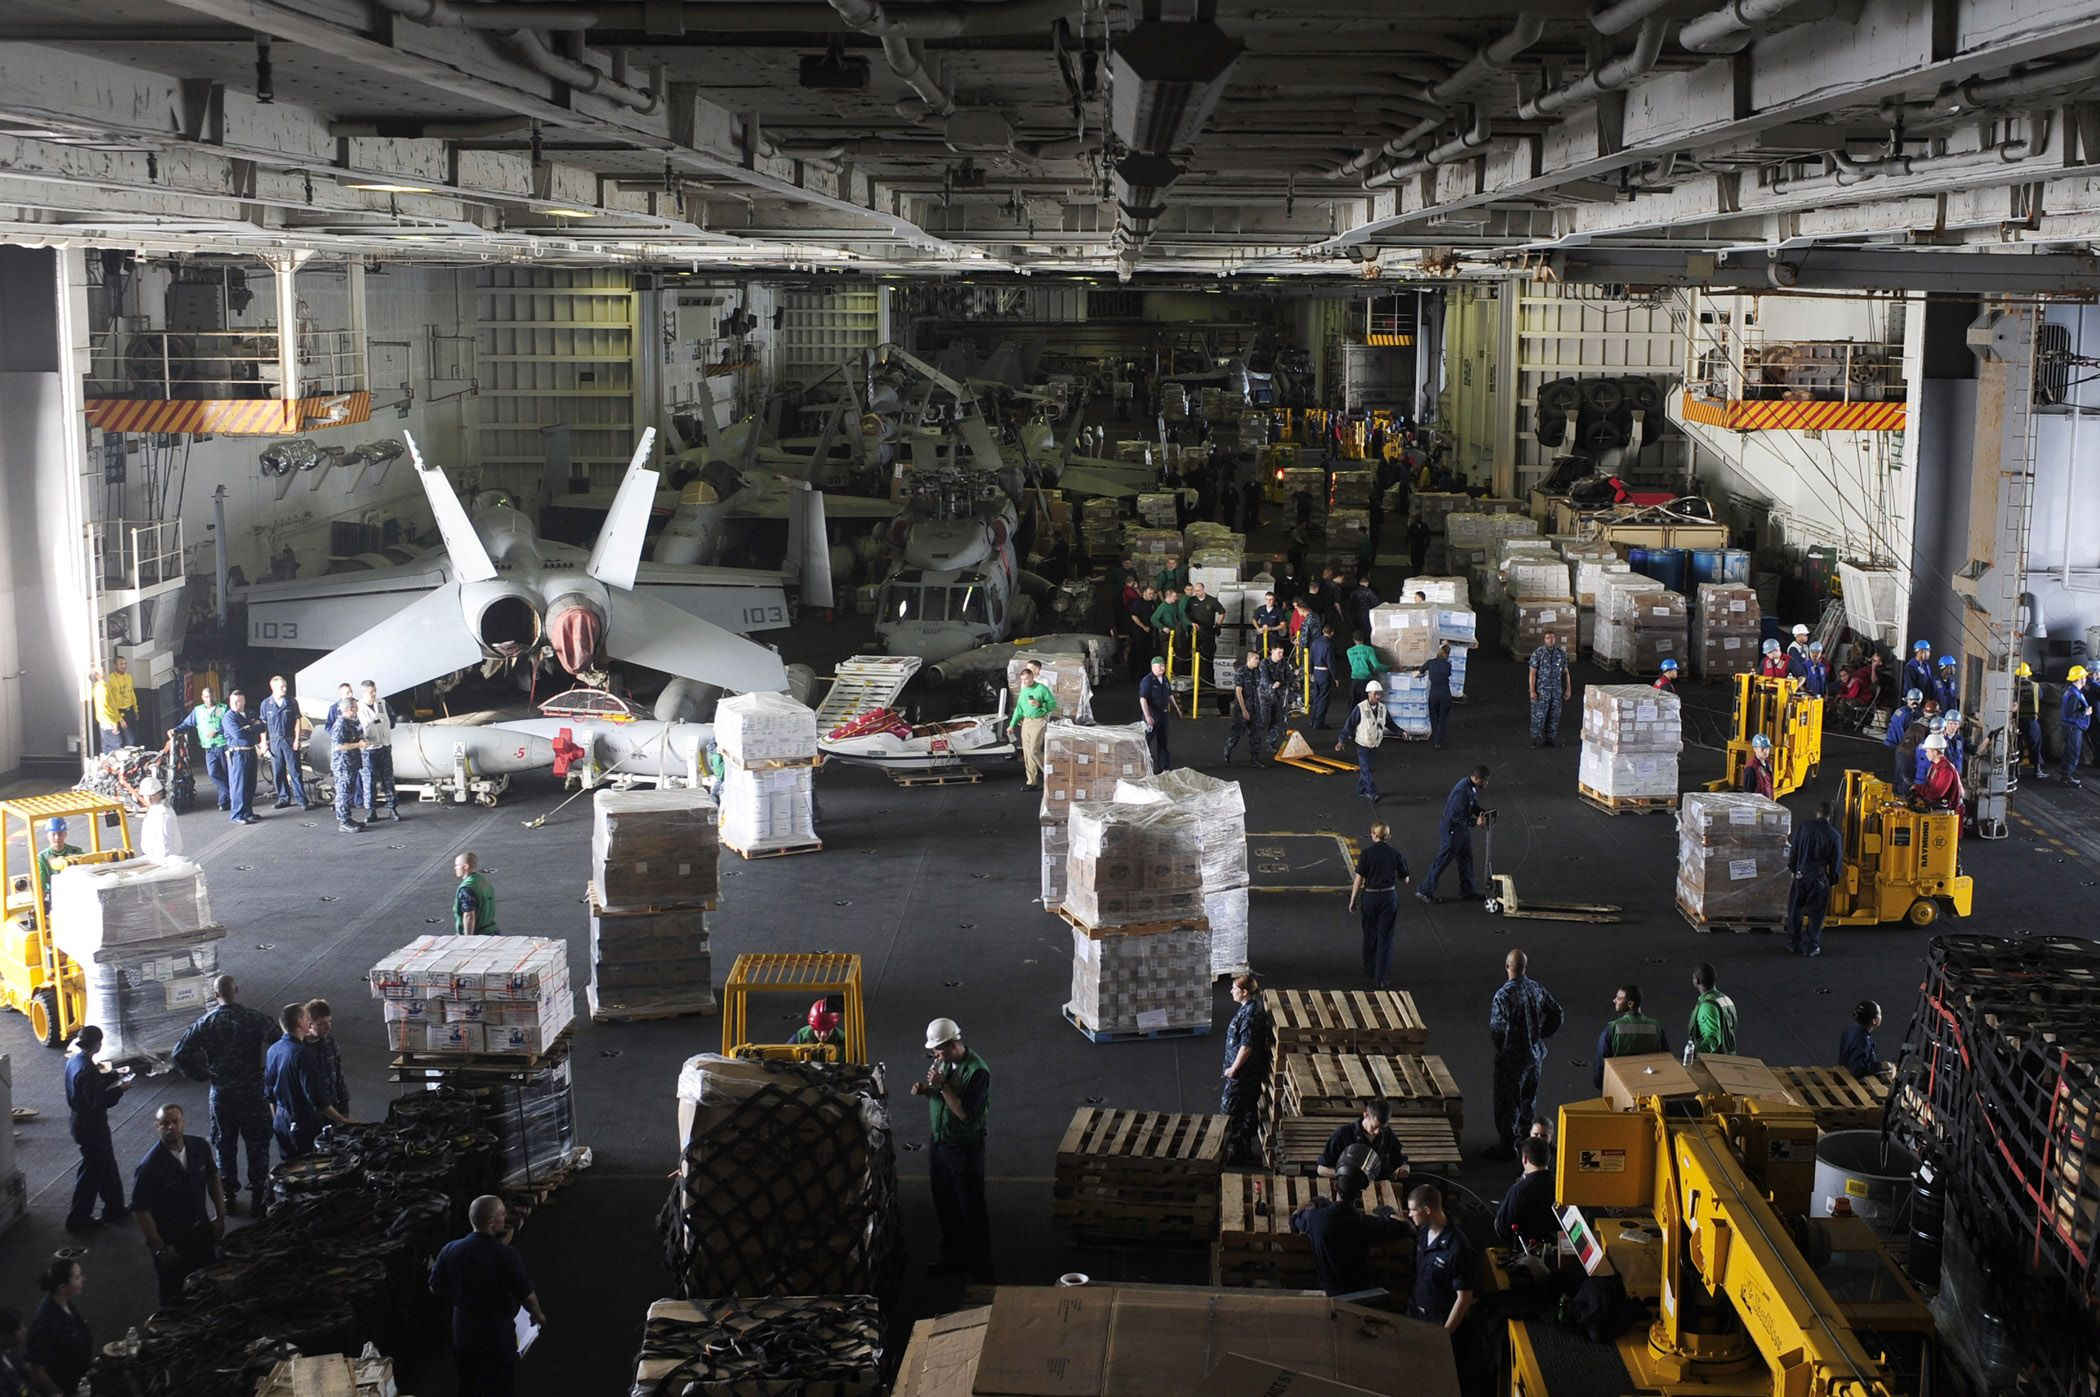 Photos Of Uss Saratoga Hangar Bay Personnel And Supplies